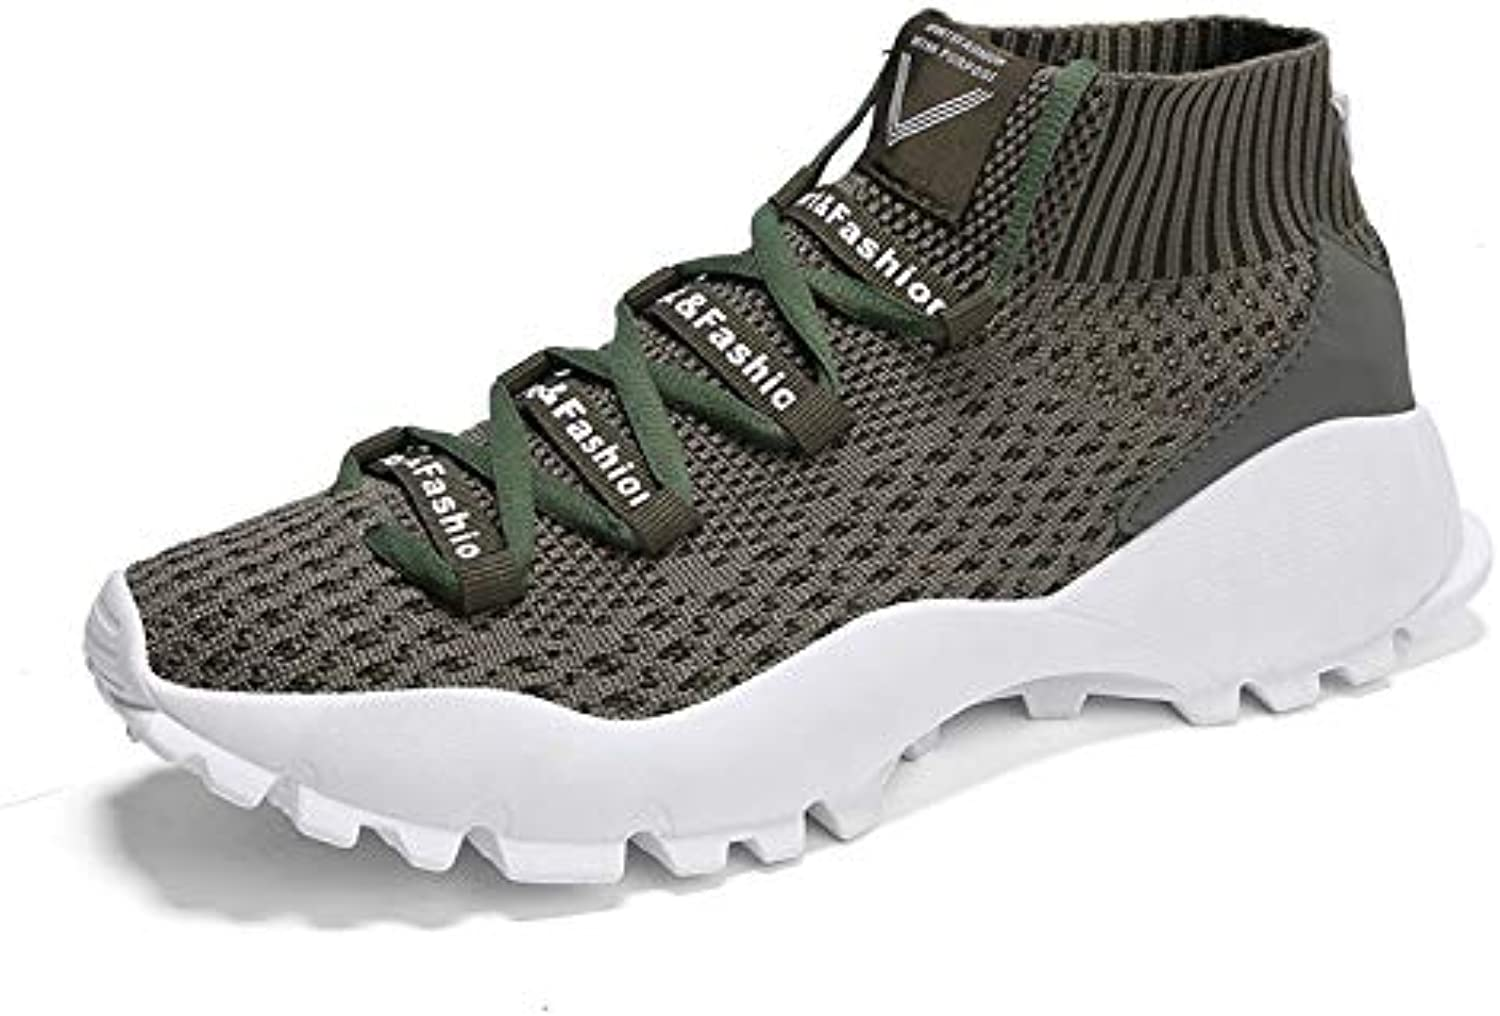 LOVDRAM Casual shoes, Breathable Men'S shoes, Flying Woven Sports shoes, Breathable And Comfortable Men'S shoes, Wild Travel